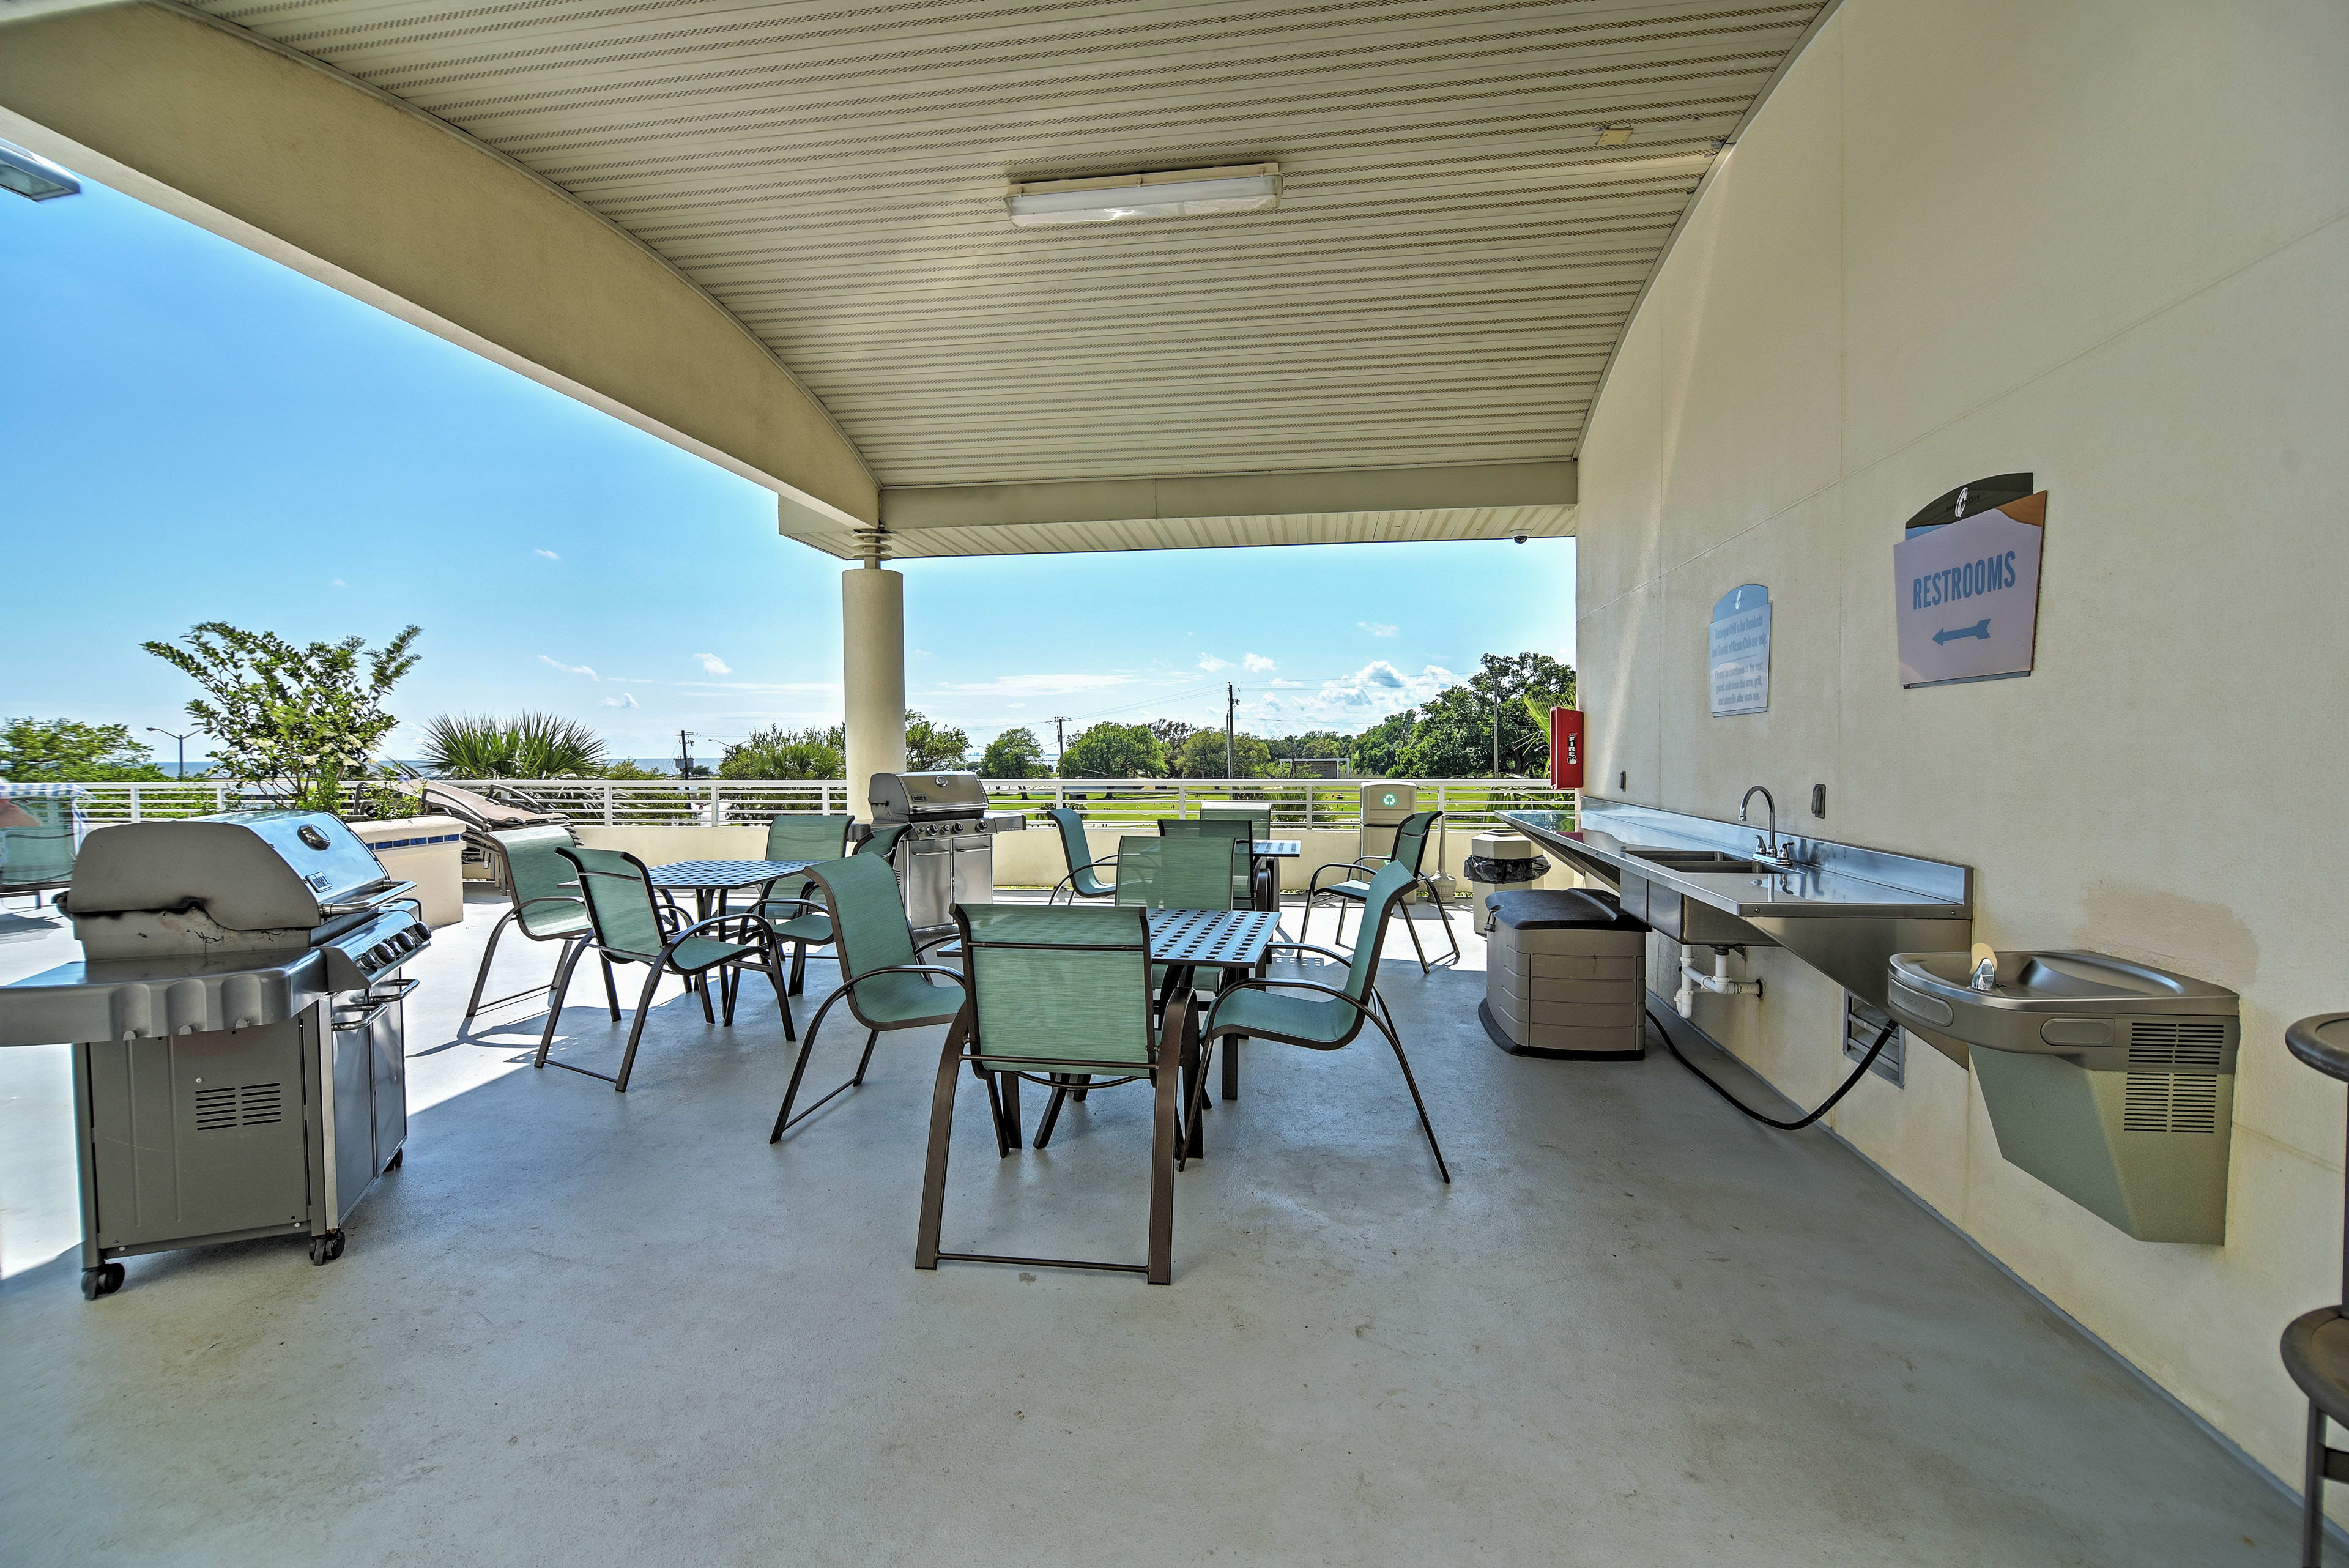 Dine al fresco on the covered patio, with ample seating!